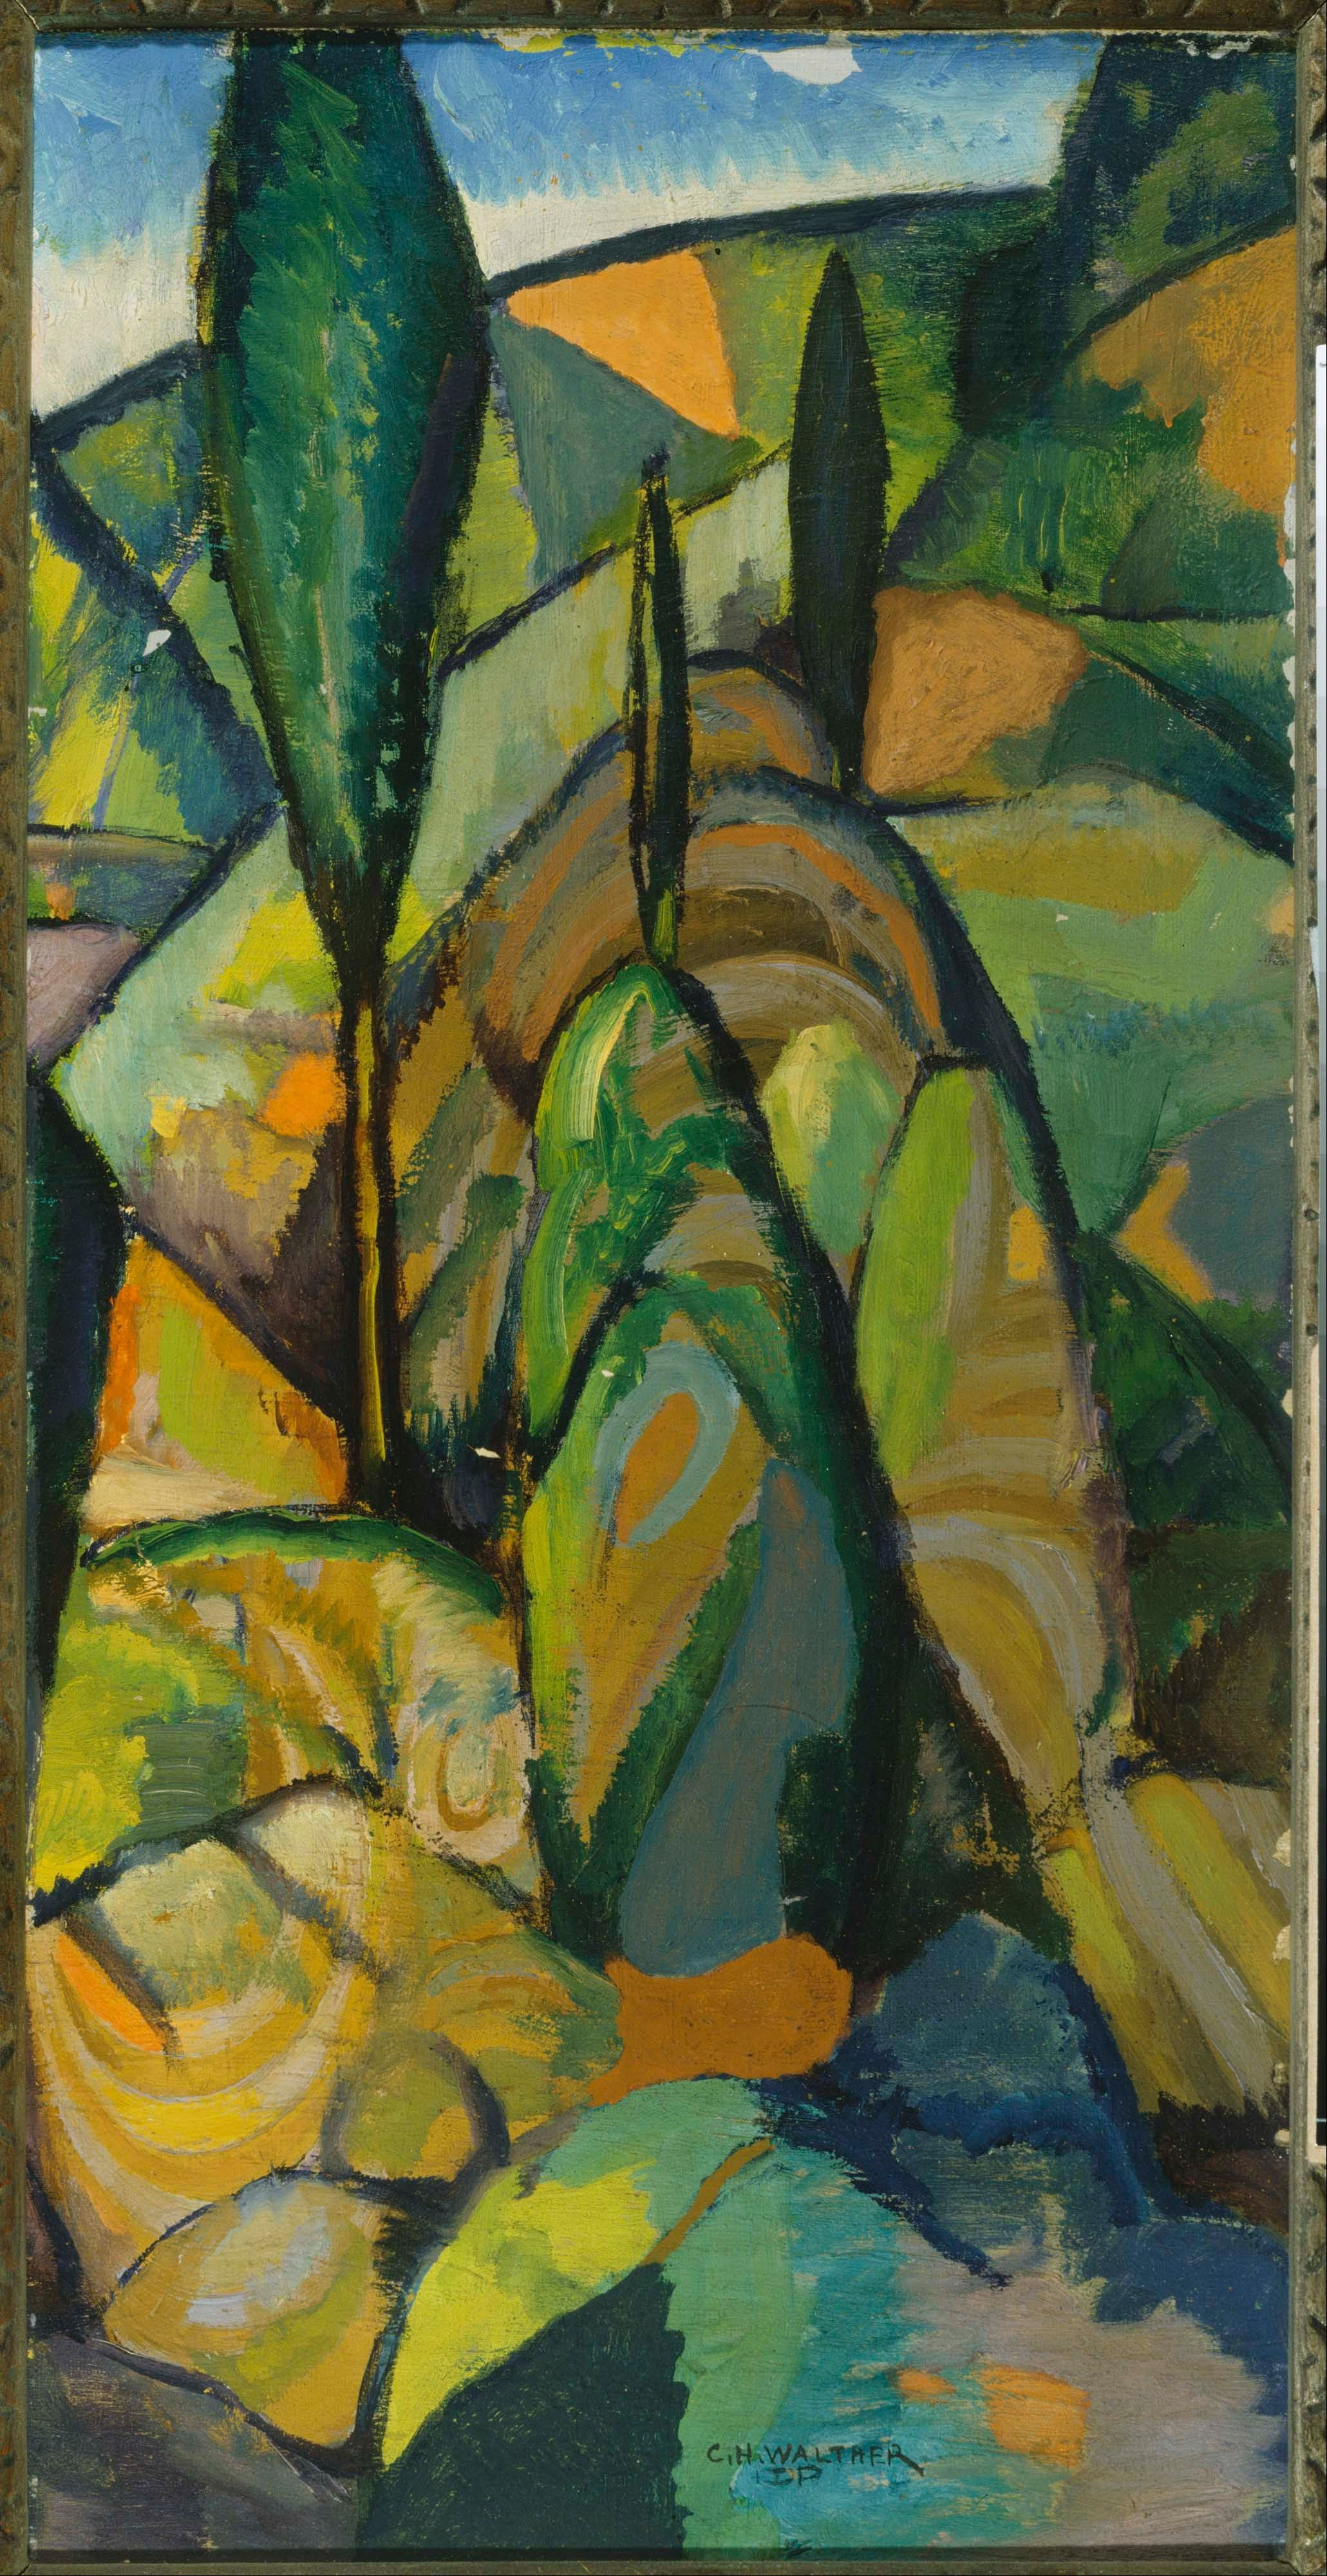 From Phillips Collection, Charles H. Walther, Abstract Landscape, Oil on  canvas board, 20  10 in